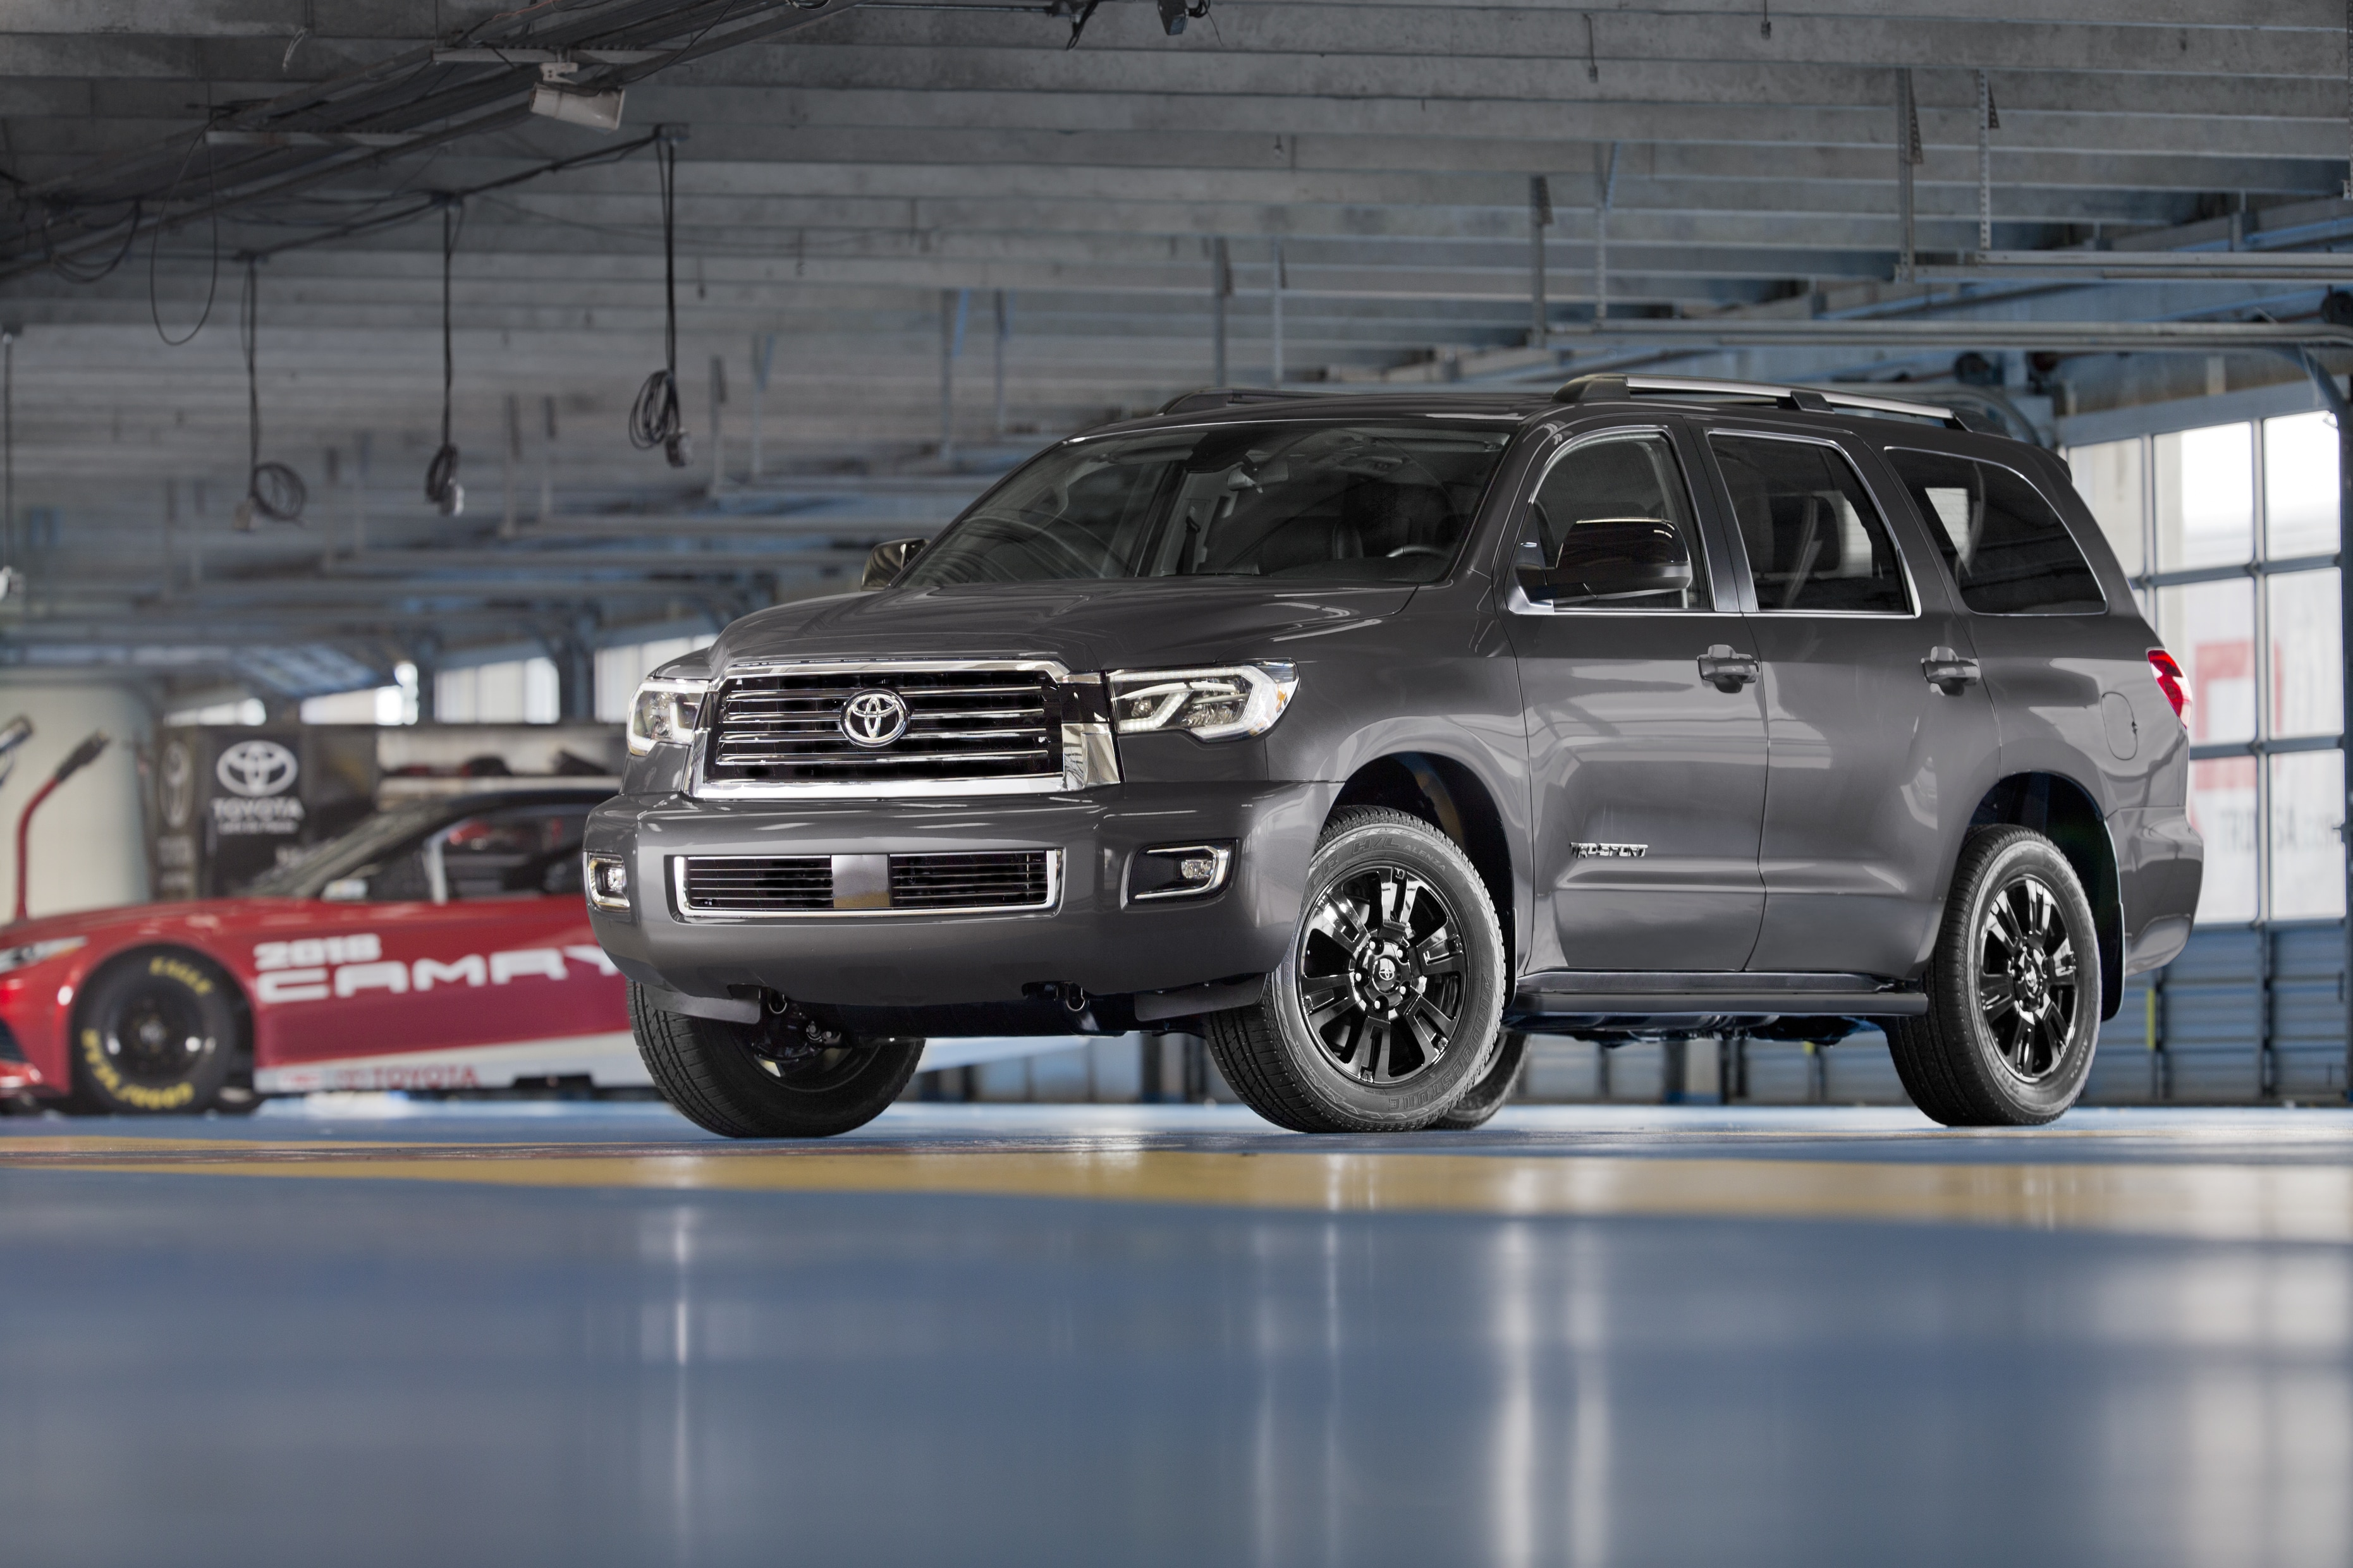 Sedia Bar Sport 2018 Toyota Sequoia Trd Sport In Little Rock Ar